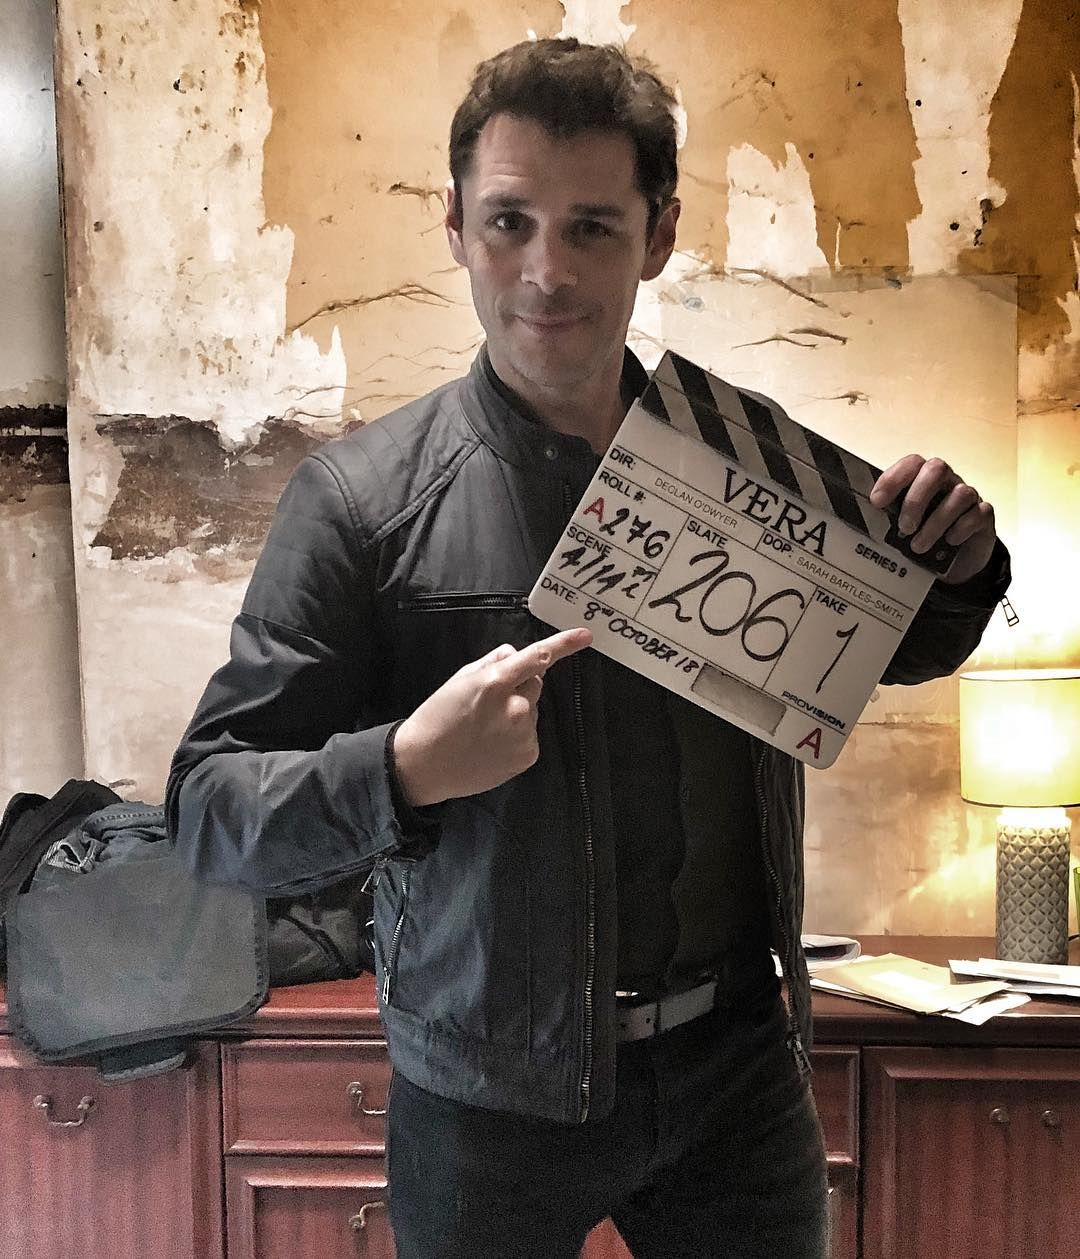 Kenny Doughty Kennydoughty On Instagram Love My Job Very Lucky To Be Doing What I Always Dreamt Of Lucky Behindthescenes Love My Job My Love My Job